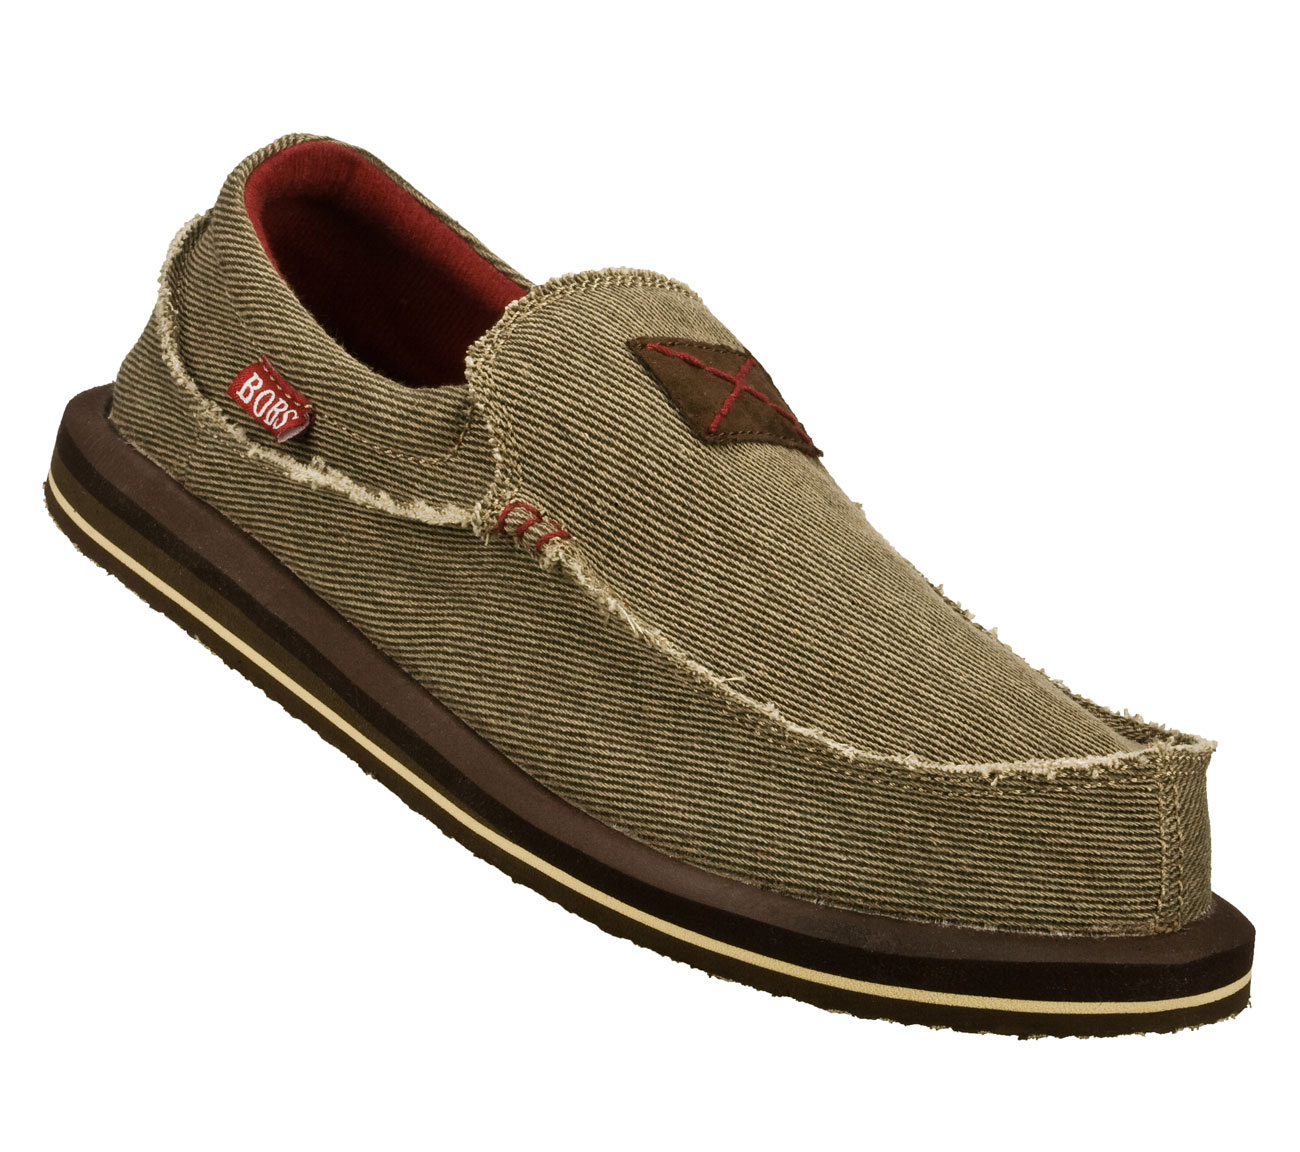 Skechers Bobs Keepsakes Ice Angel clogs feature a cable sweater knit upper, faux fur lining, plush foam cushioned foot bed and a flexible rubber out sole that provides traction.